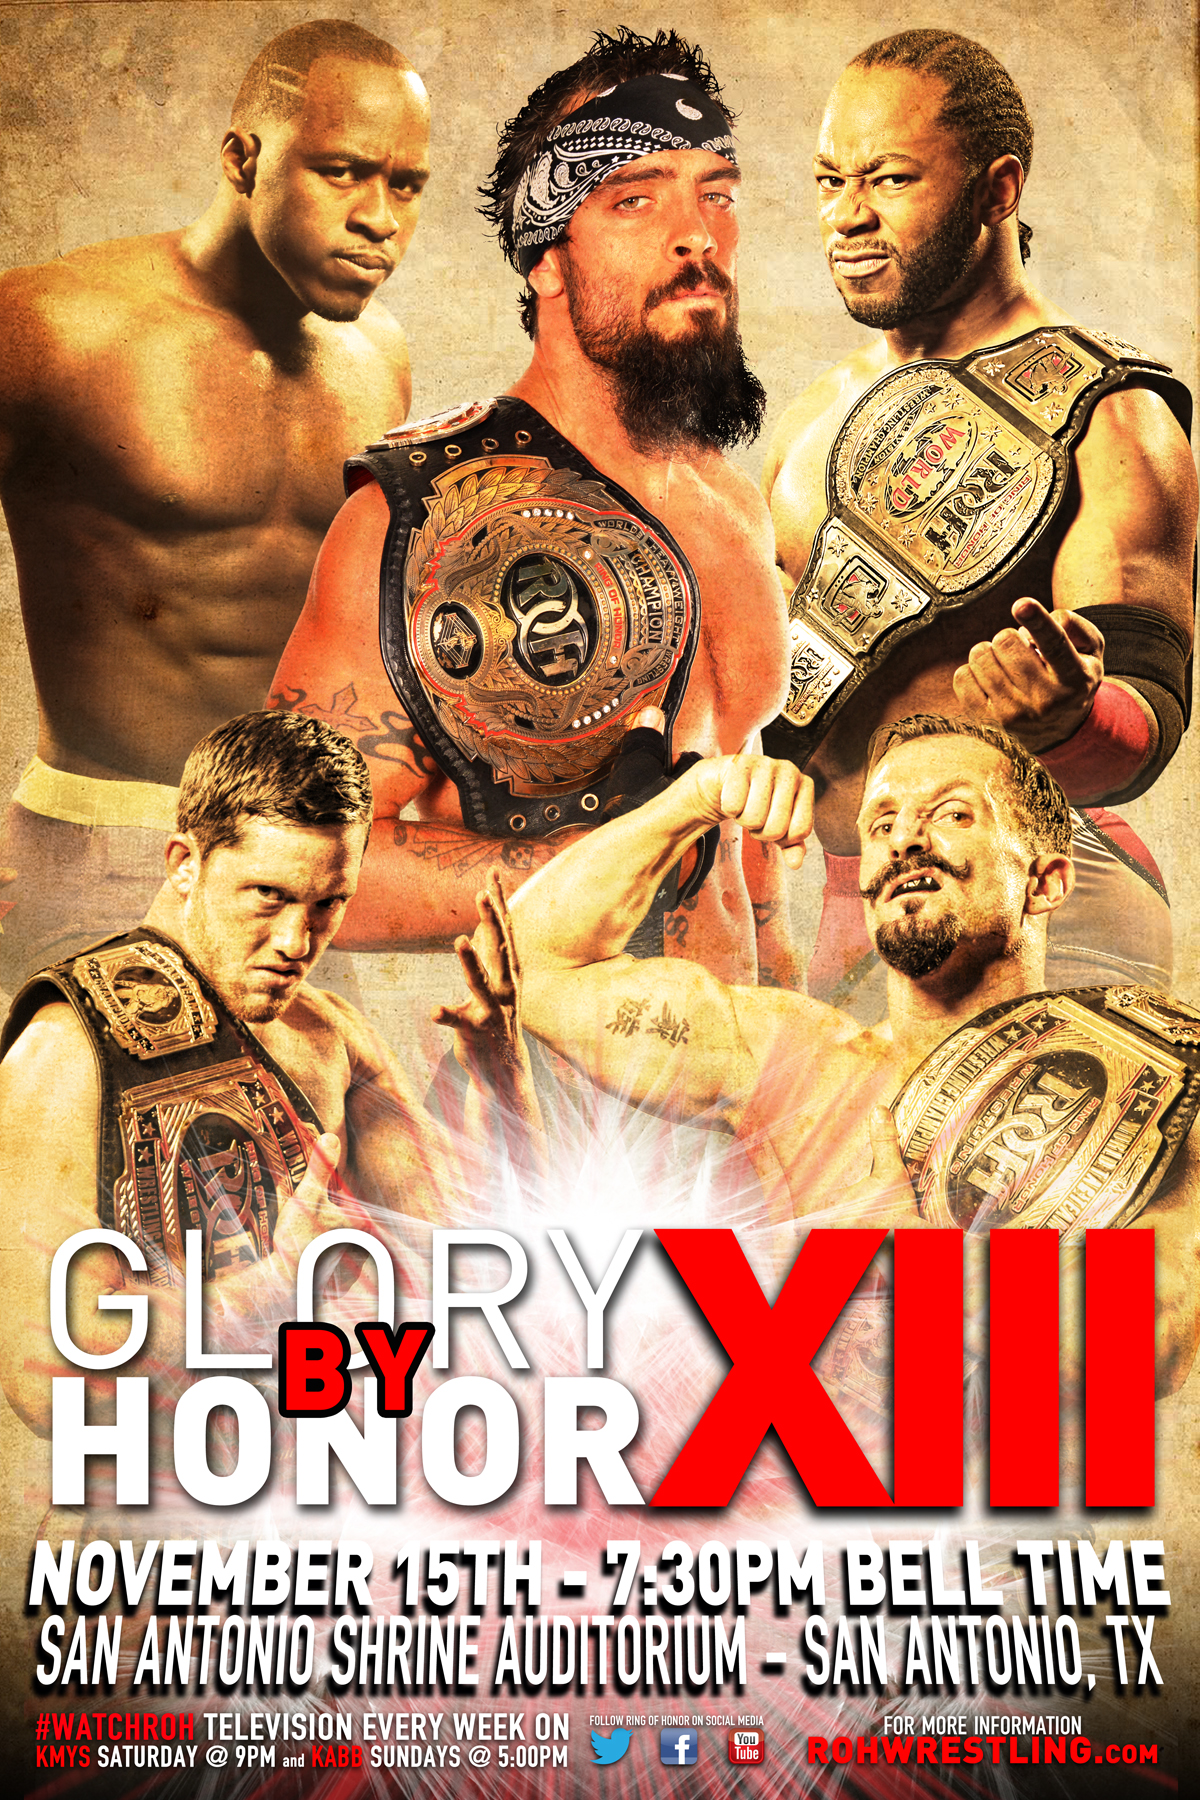 ROH Glory By Honor XIII